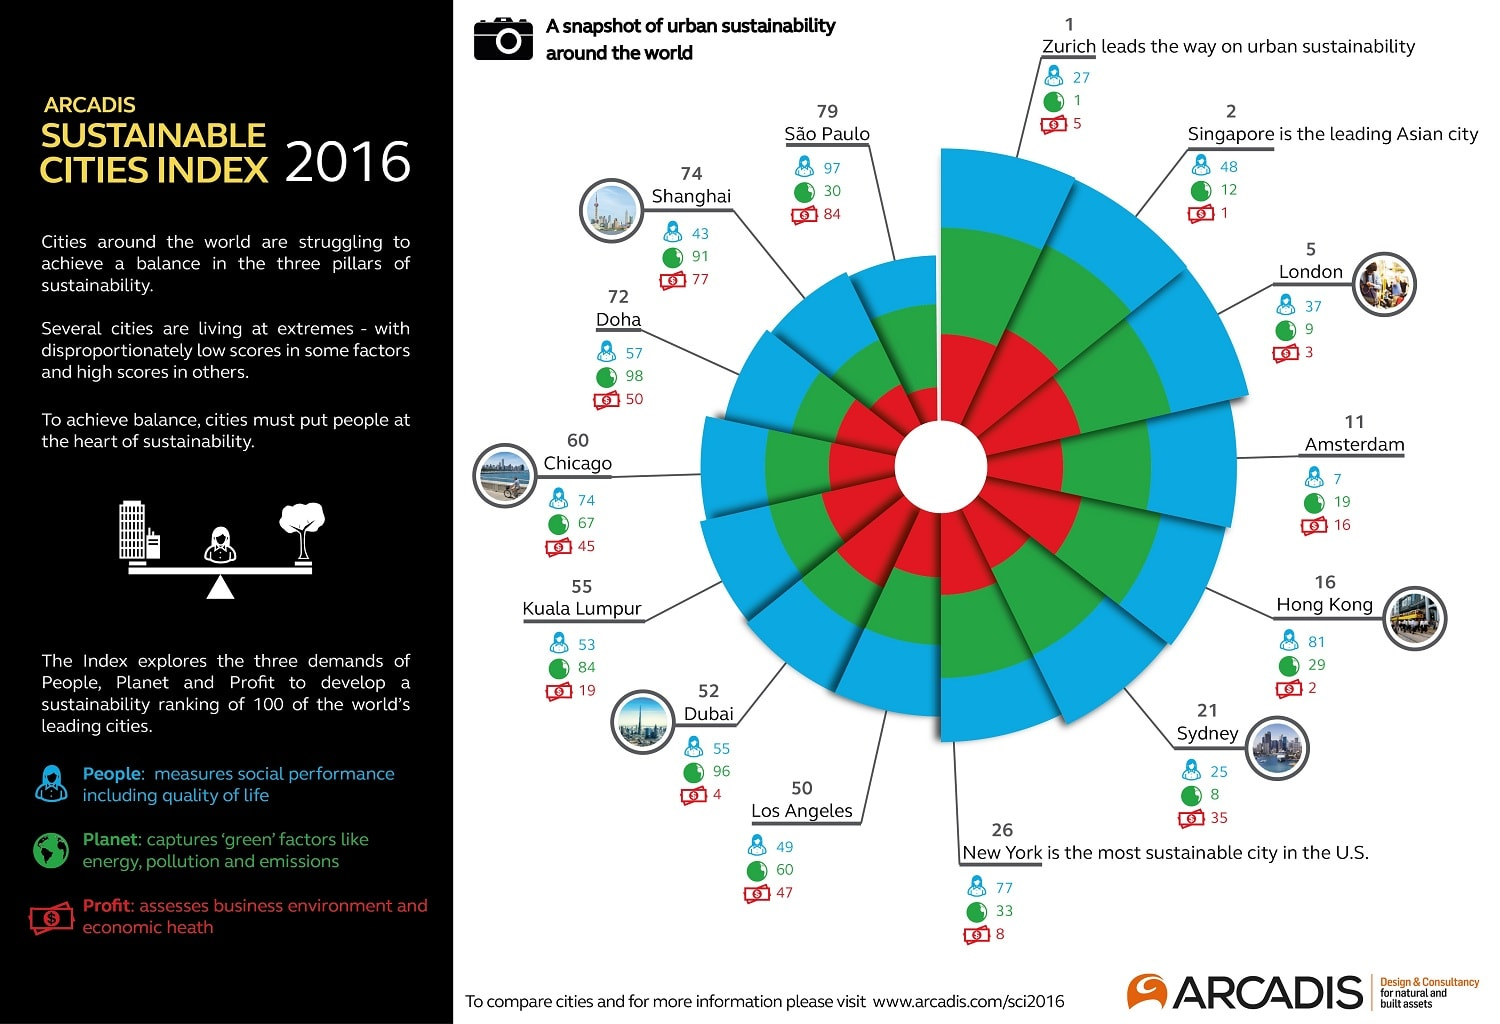 sustainable cities index 2016 - comparison around the world - arcadis